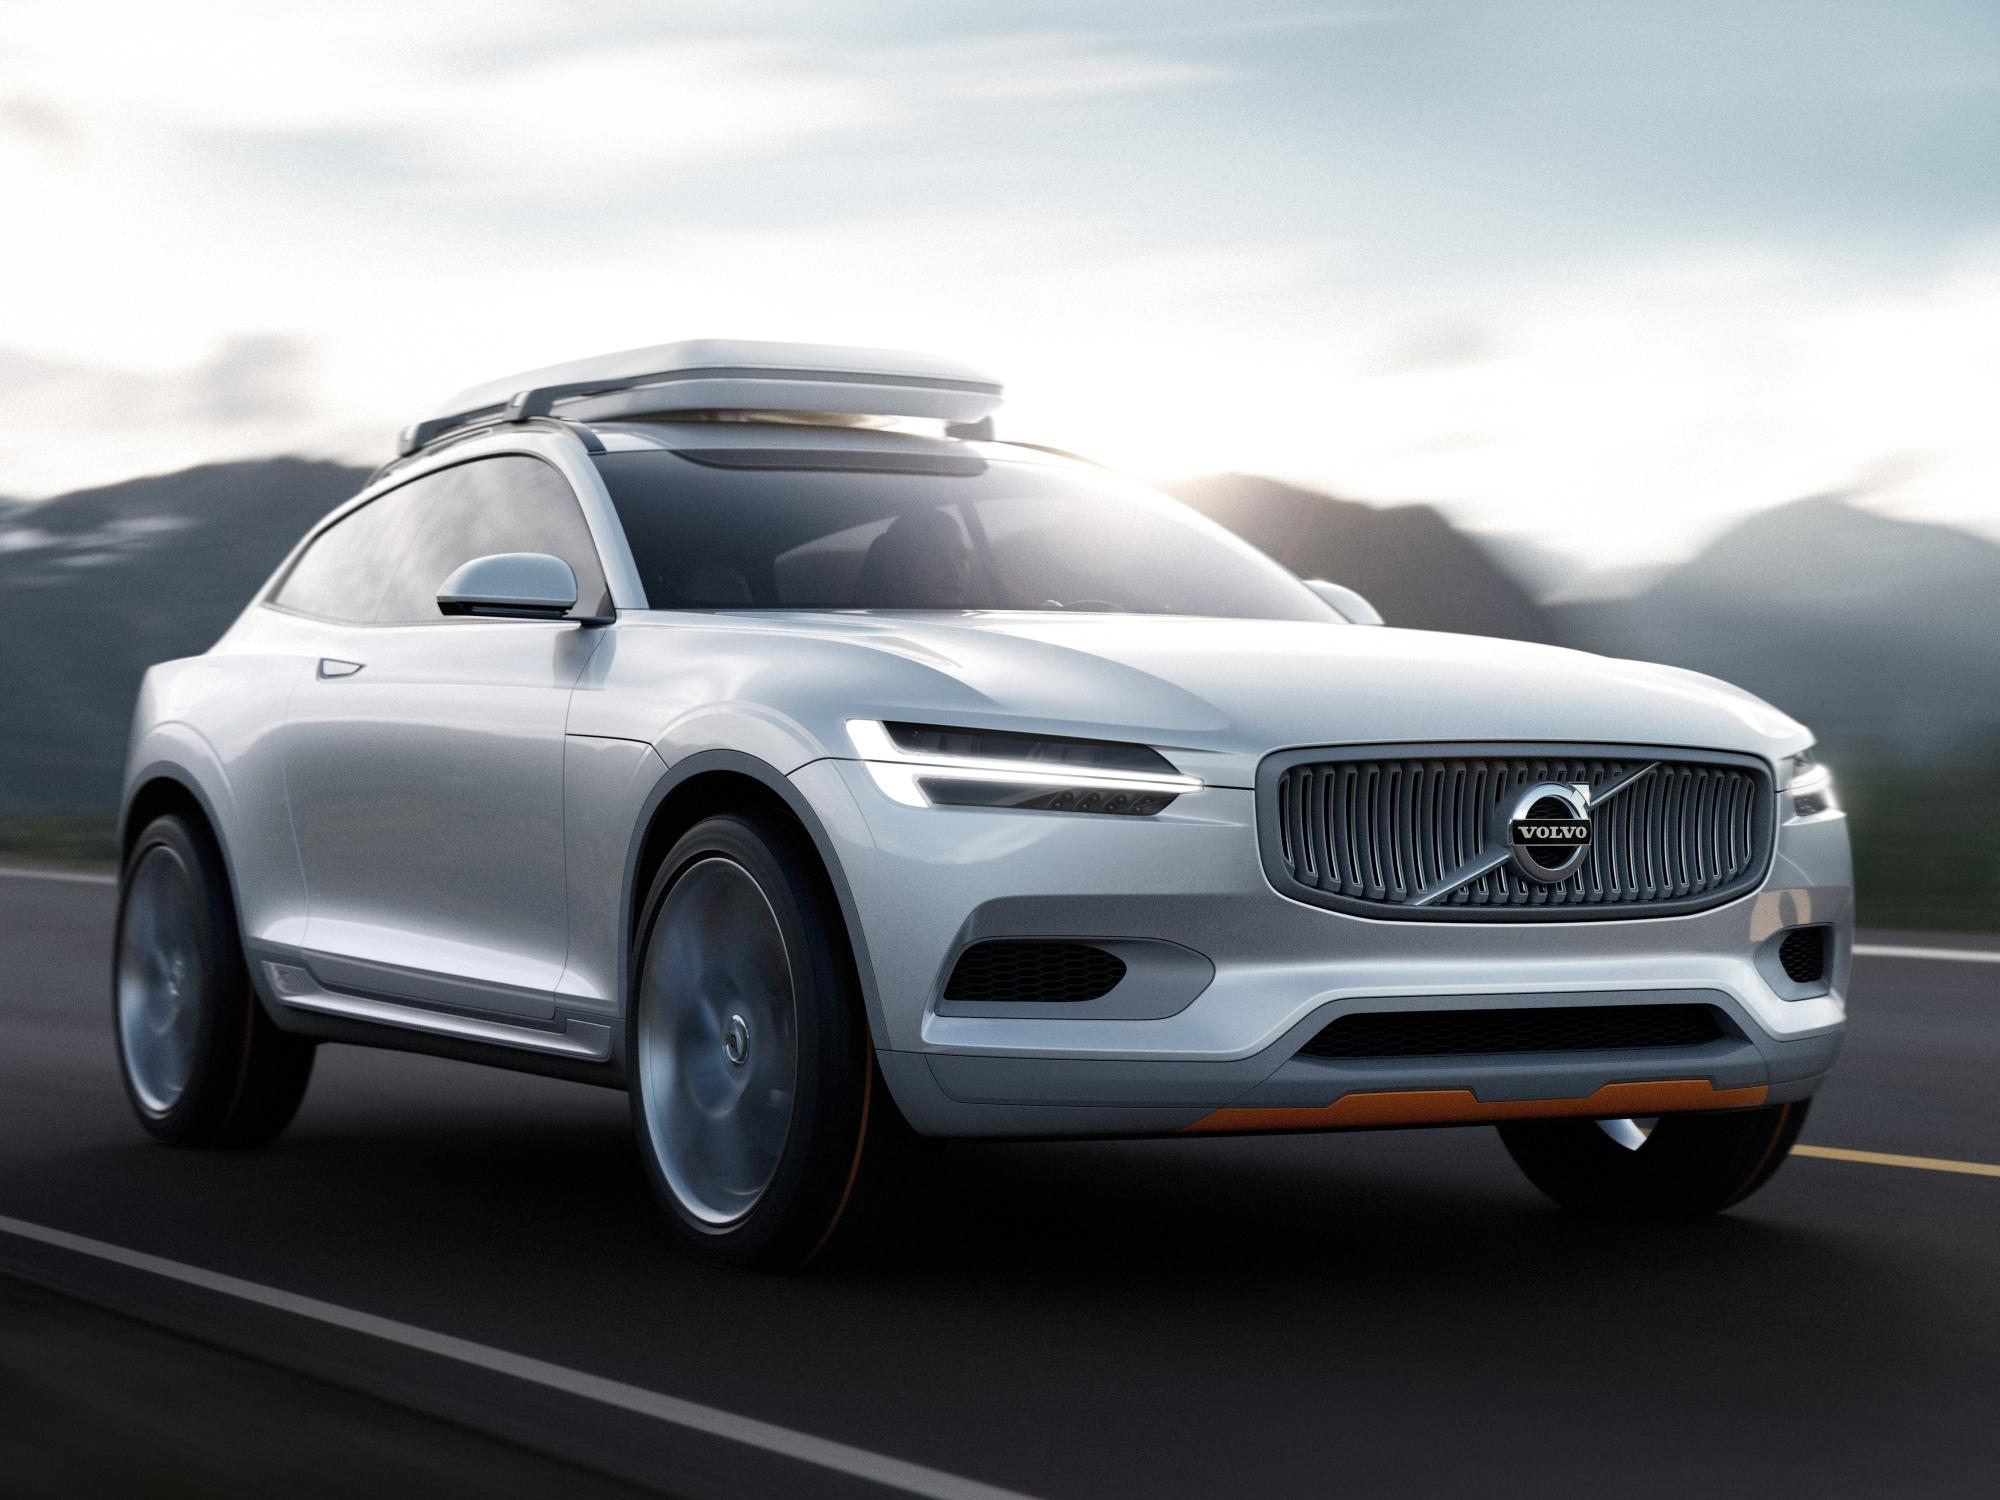 New 2015 Volvo XC90 SUV